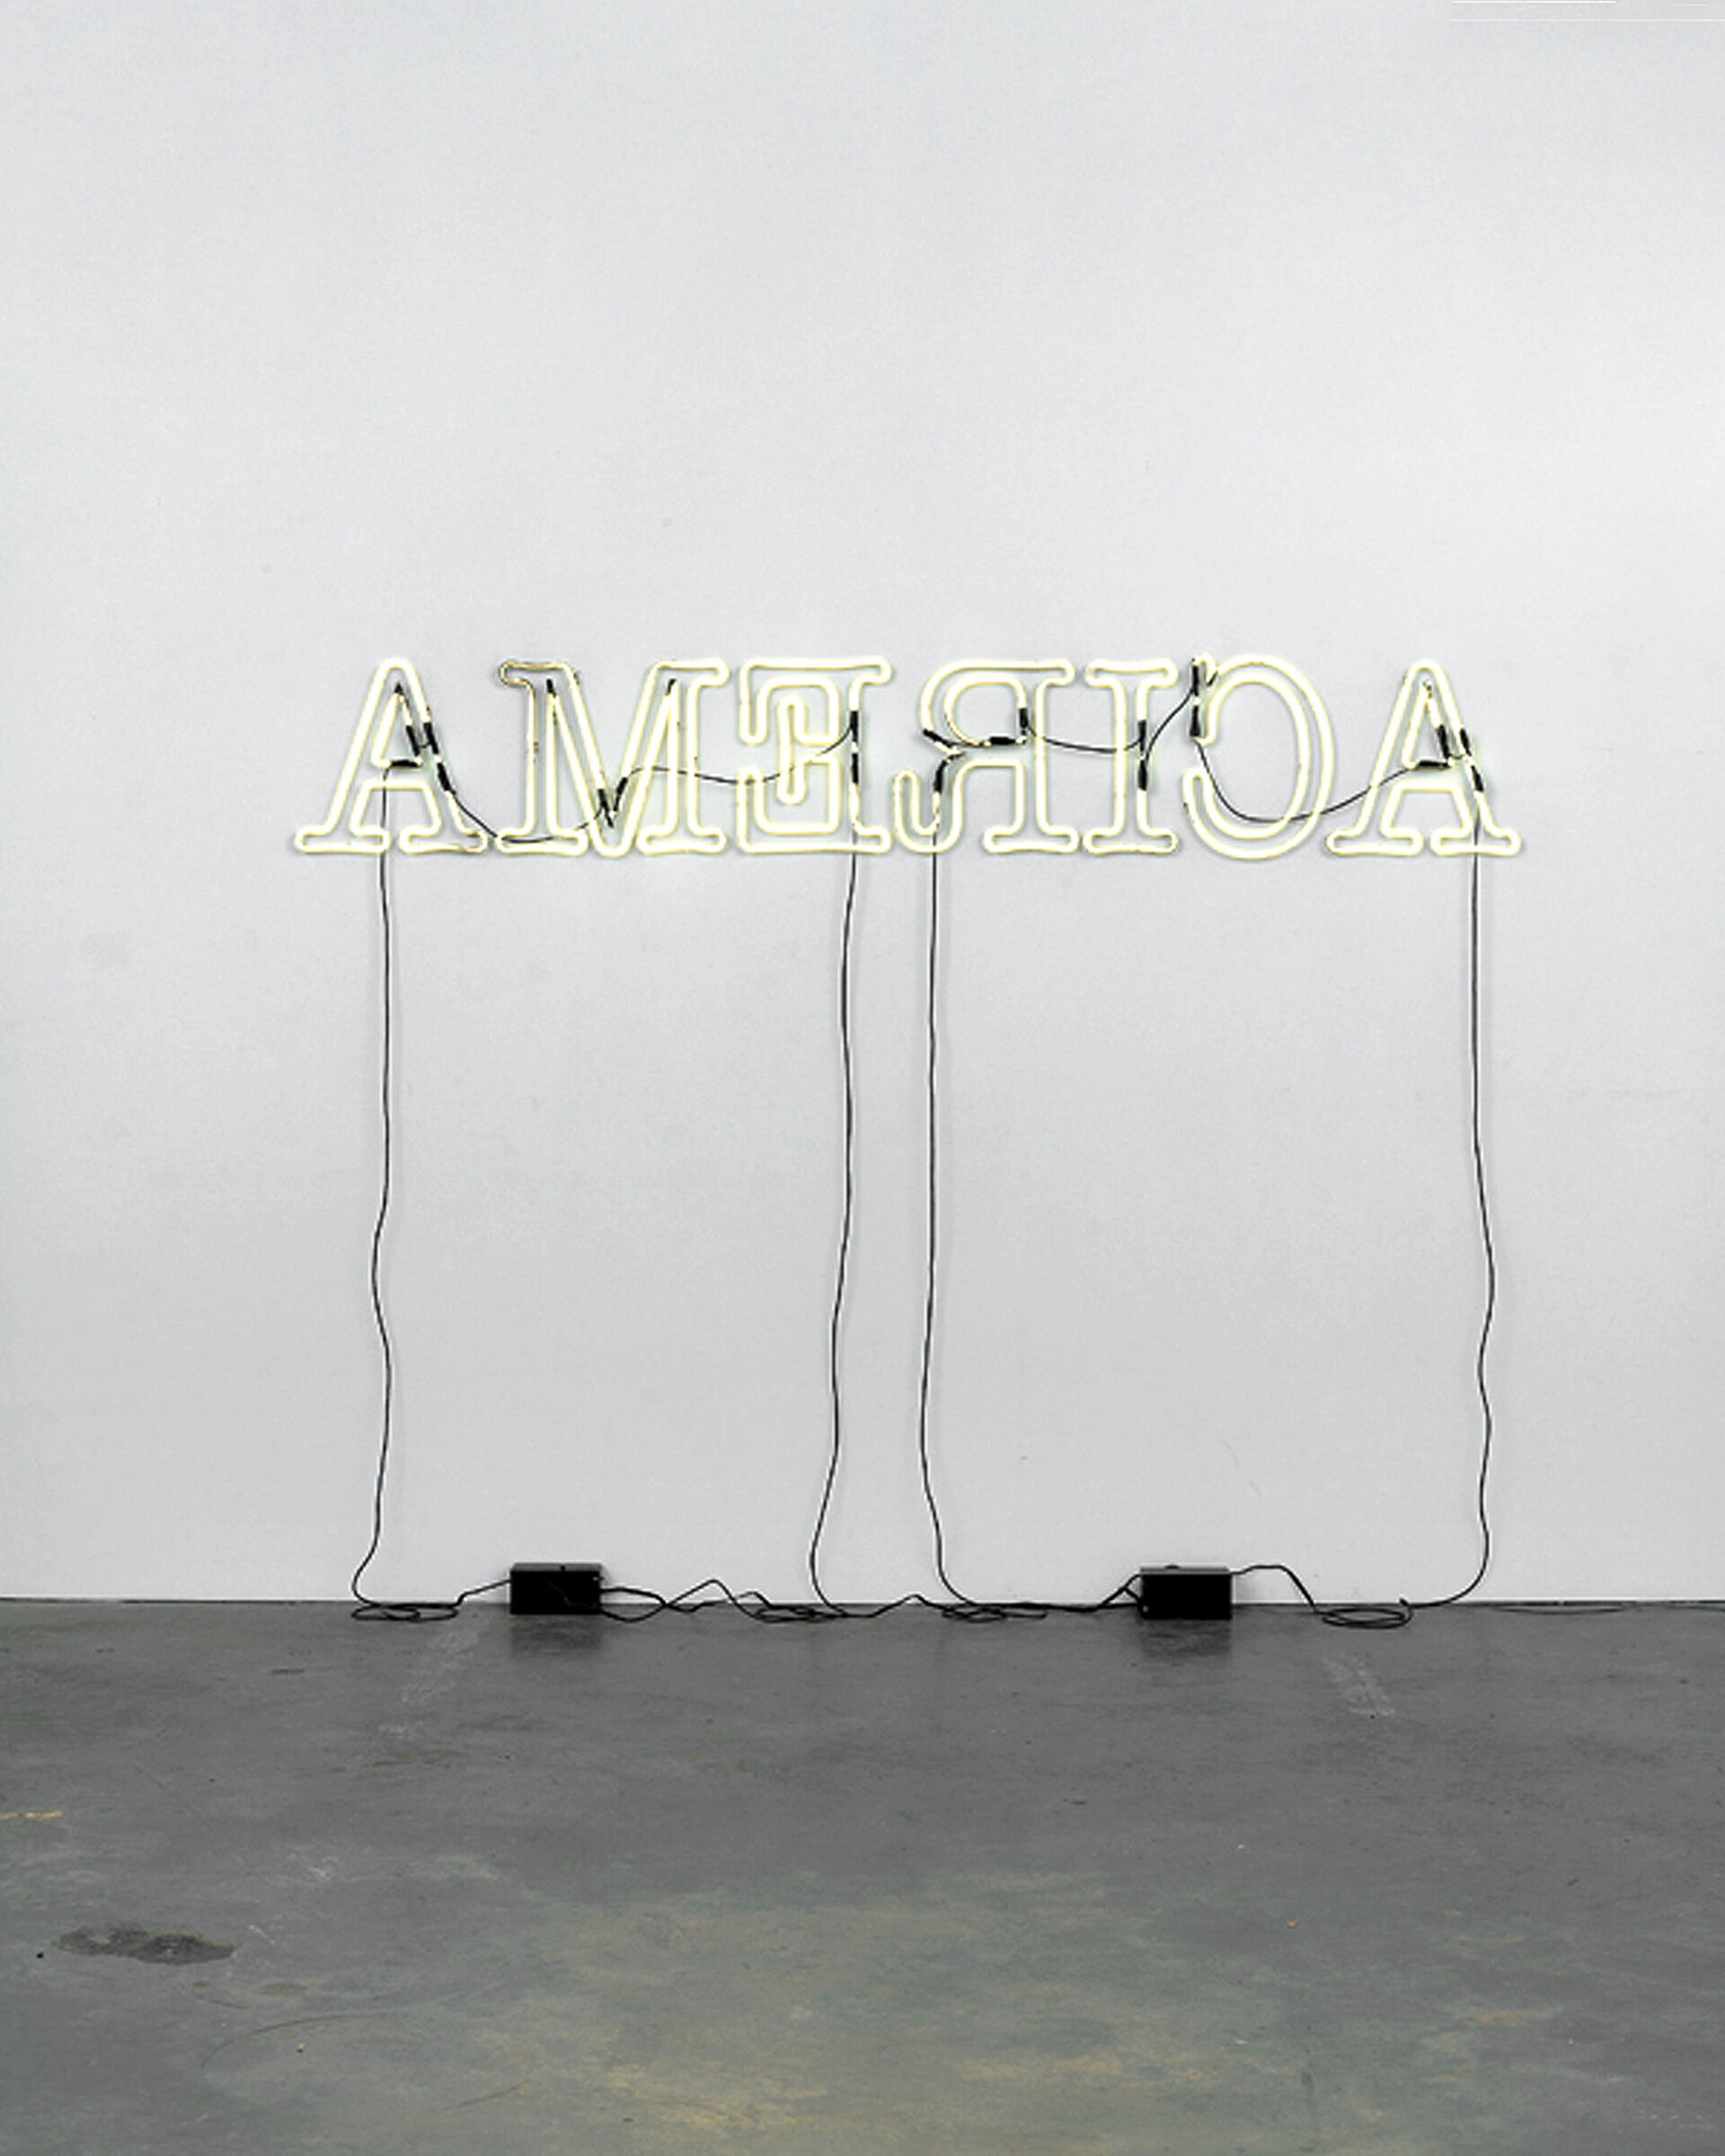 America in neon letters.